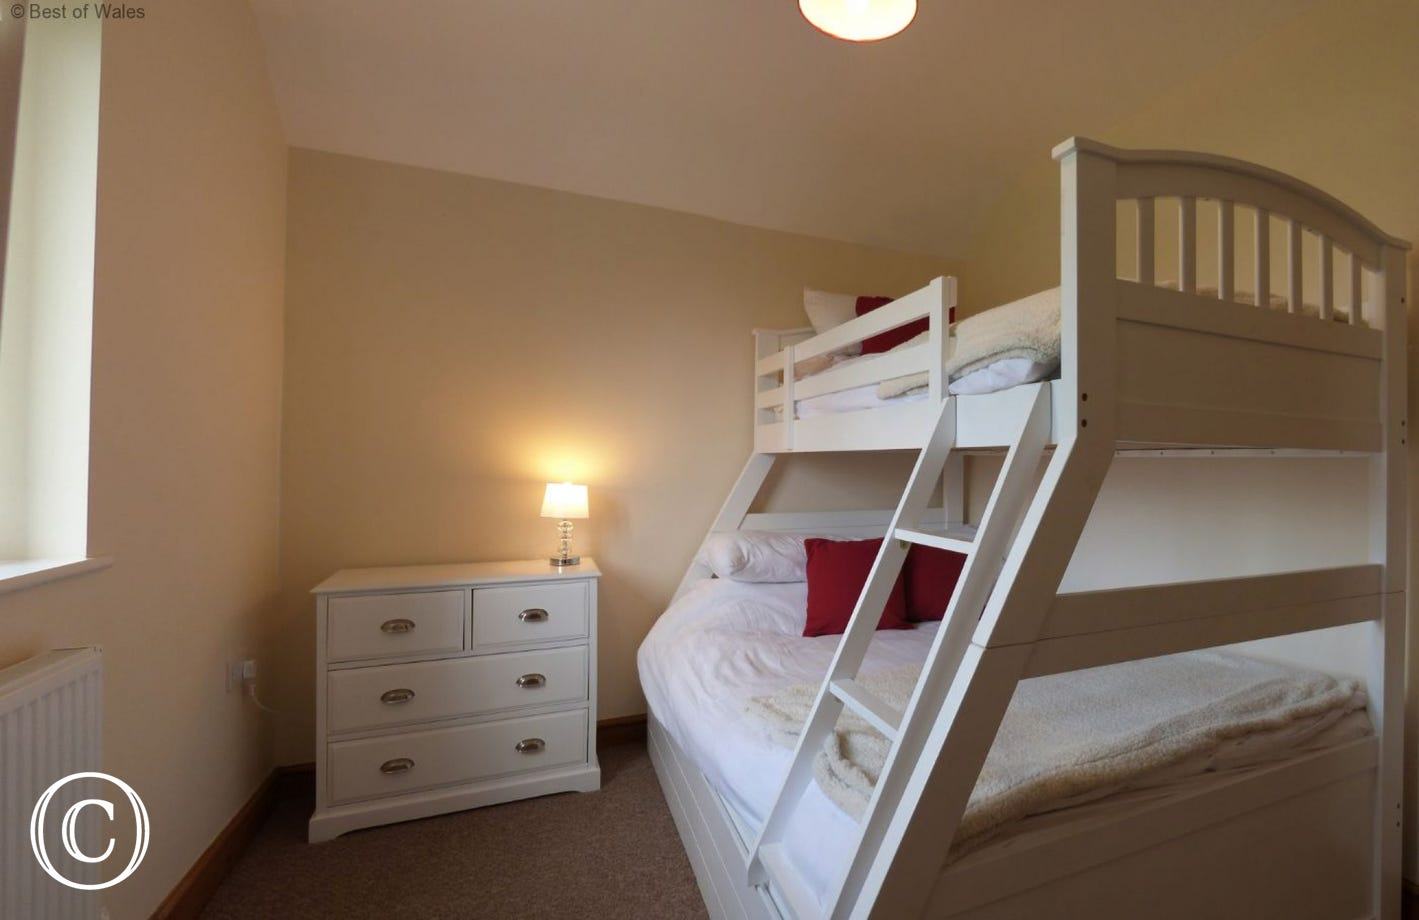 Bedroom 2: double bed and single bed combination